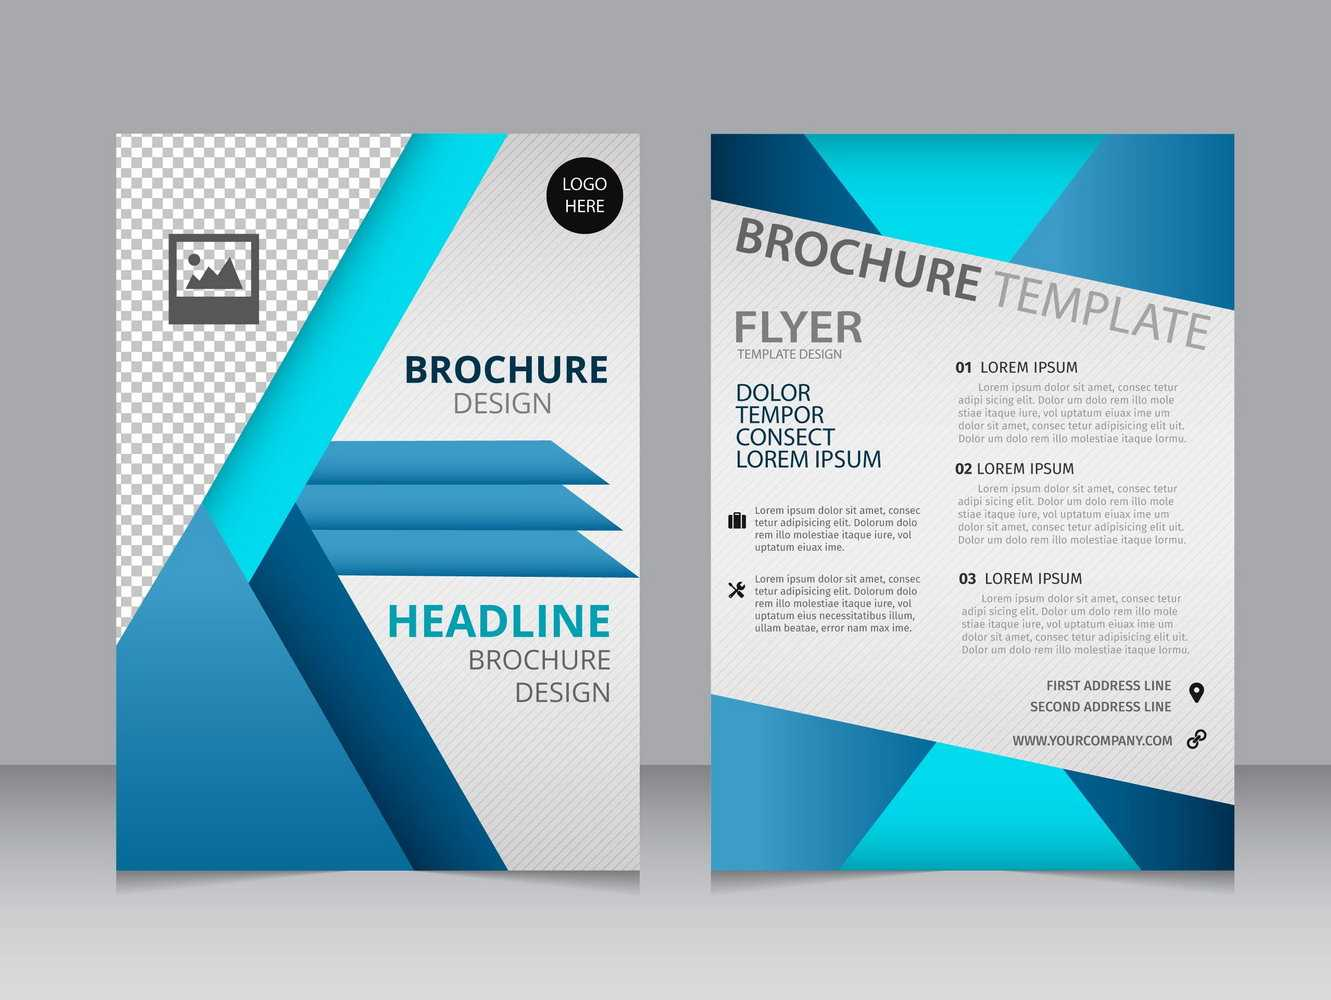 005 Blank Brochure Templates Free Download Word Template With Regard To Brochure Template Illustrator Free Download